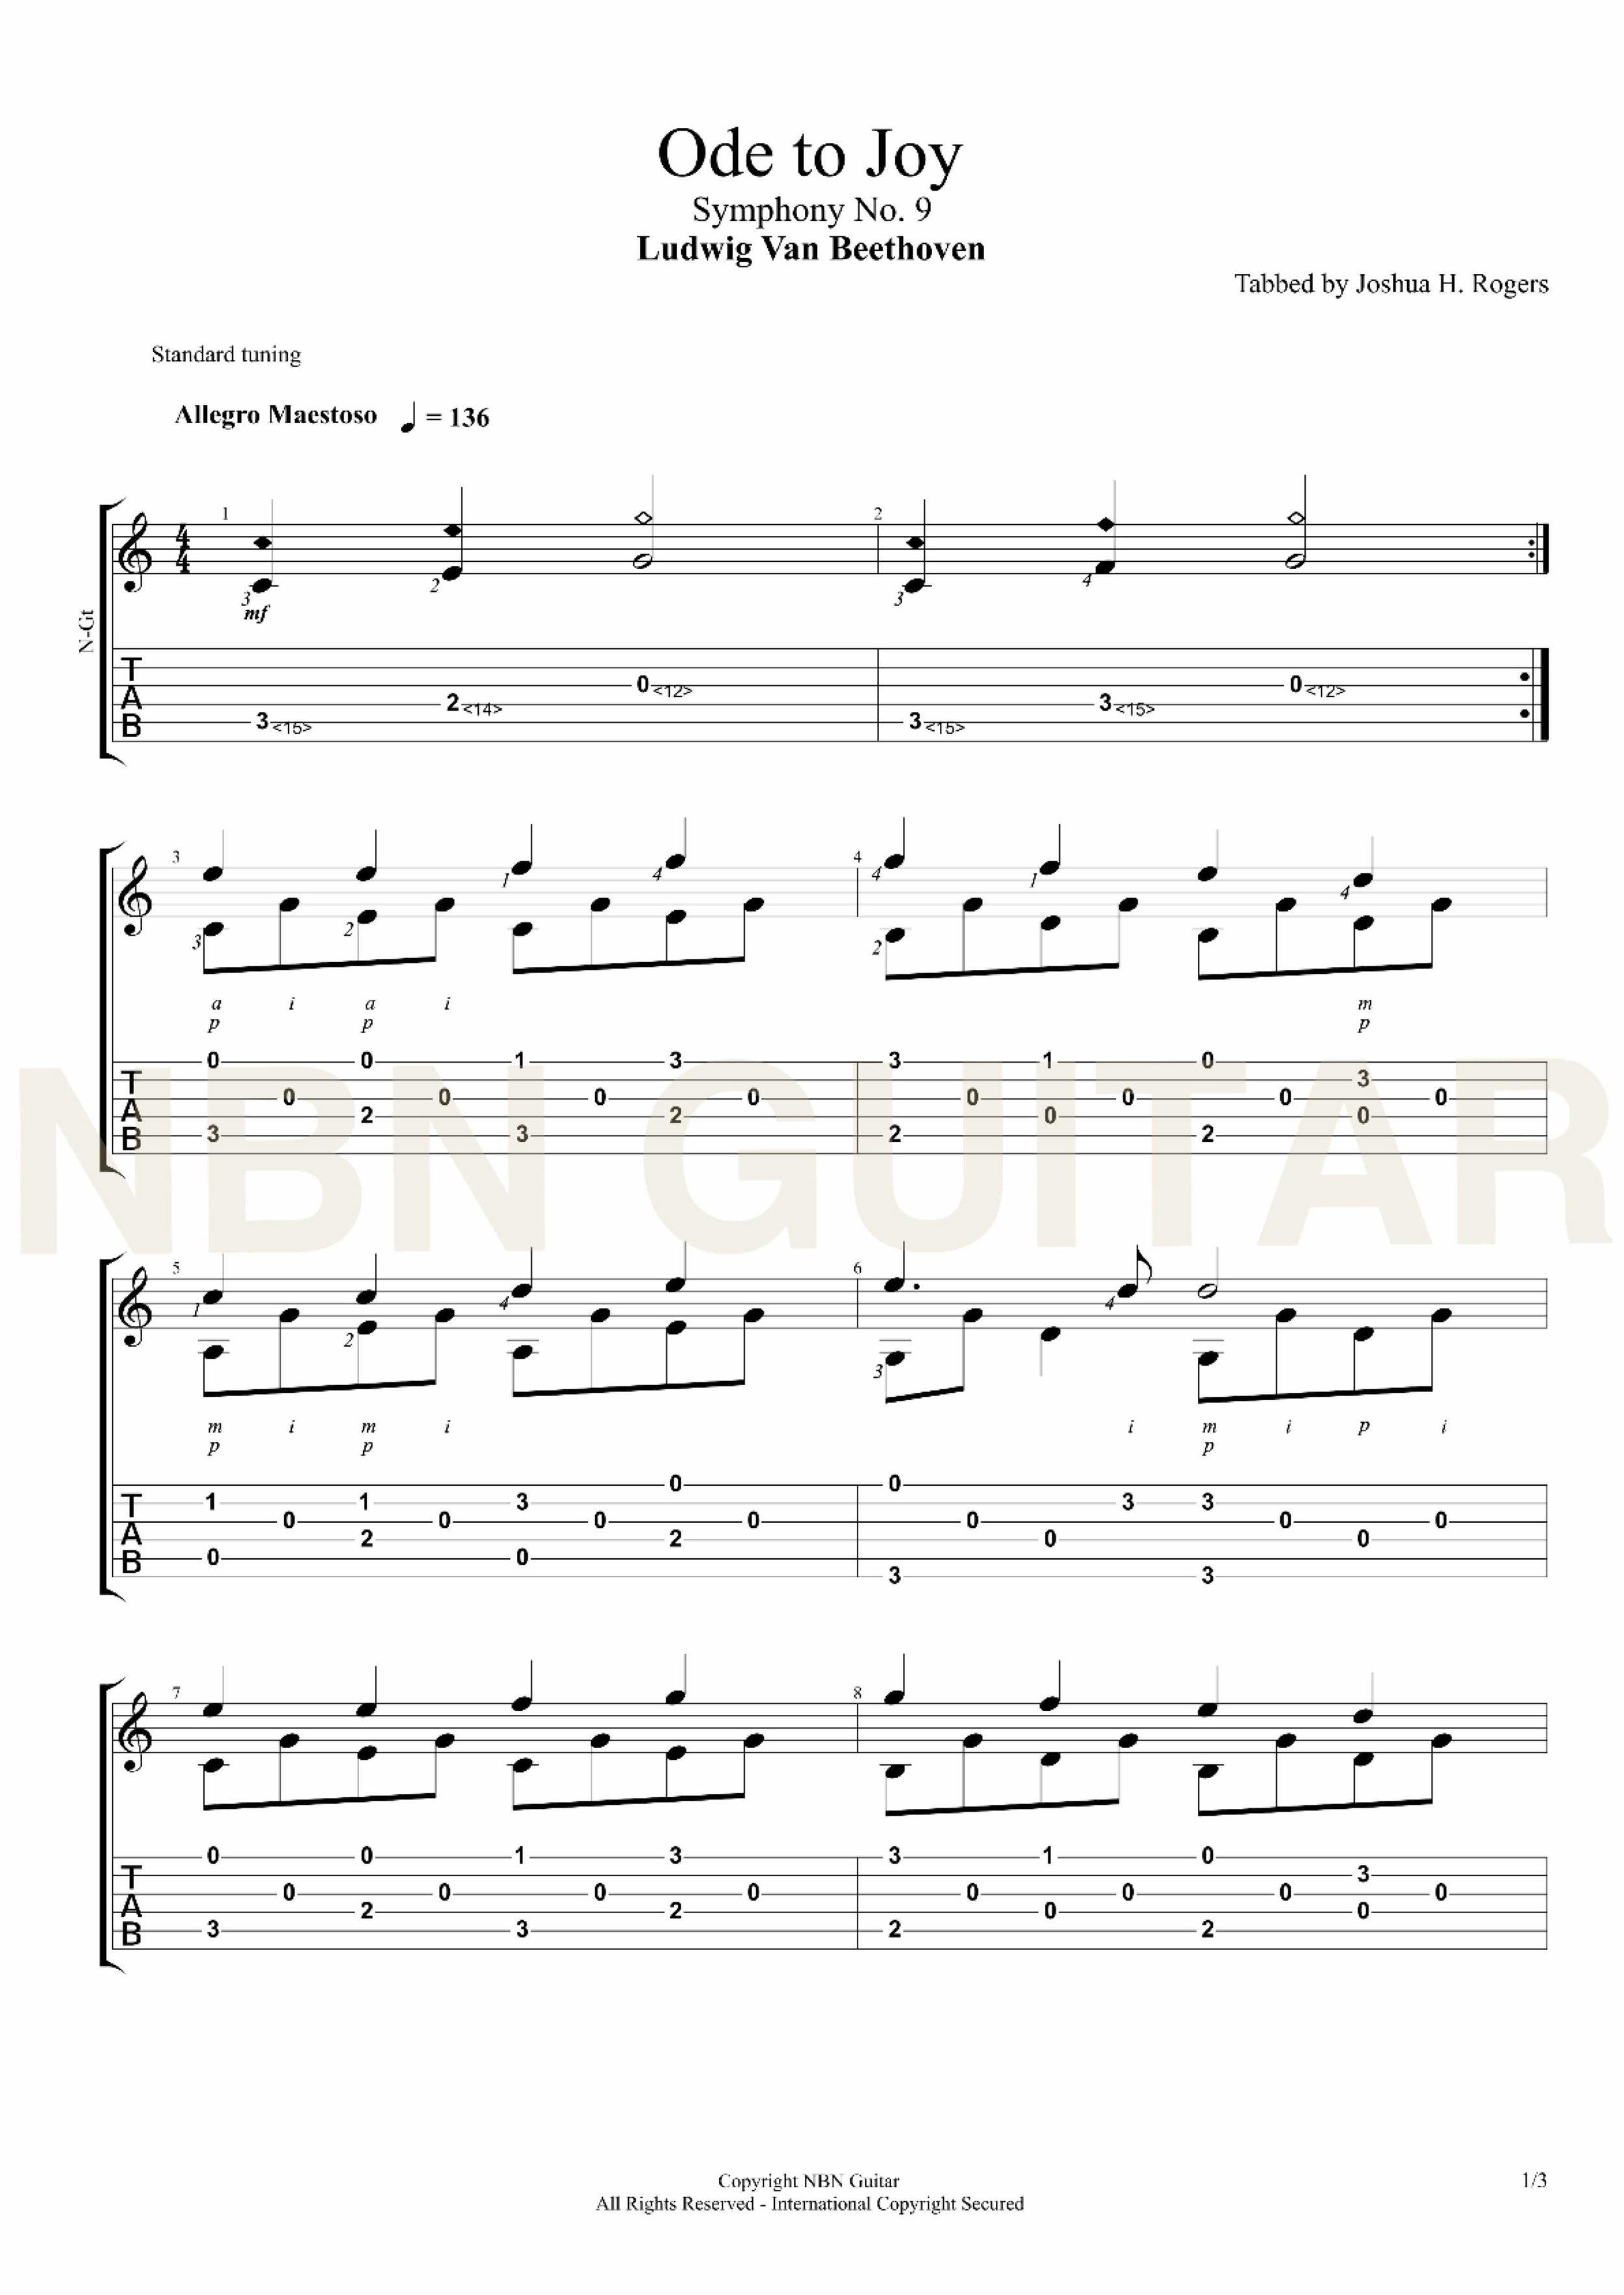 Ode To Joy Ludwig Van Beethoven Ode To Joy Guitar Sheet Music